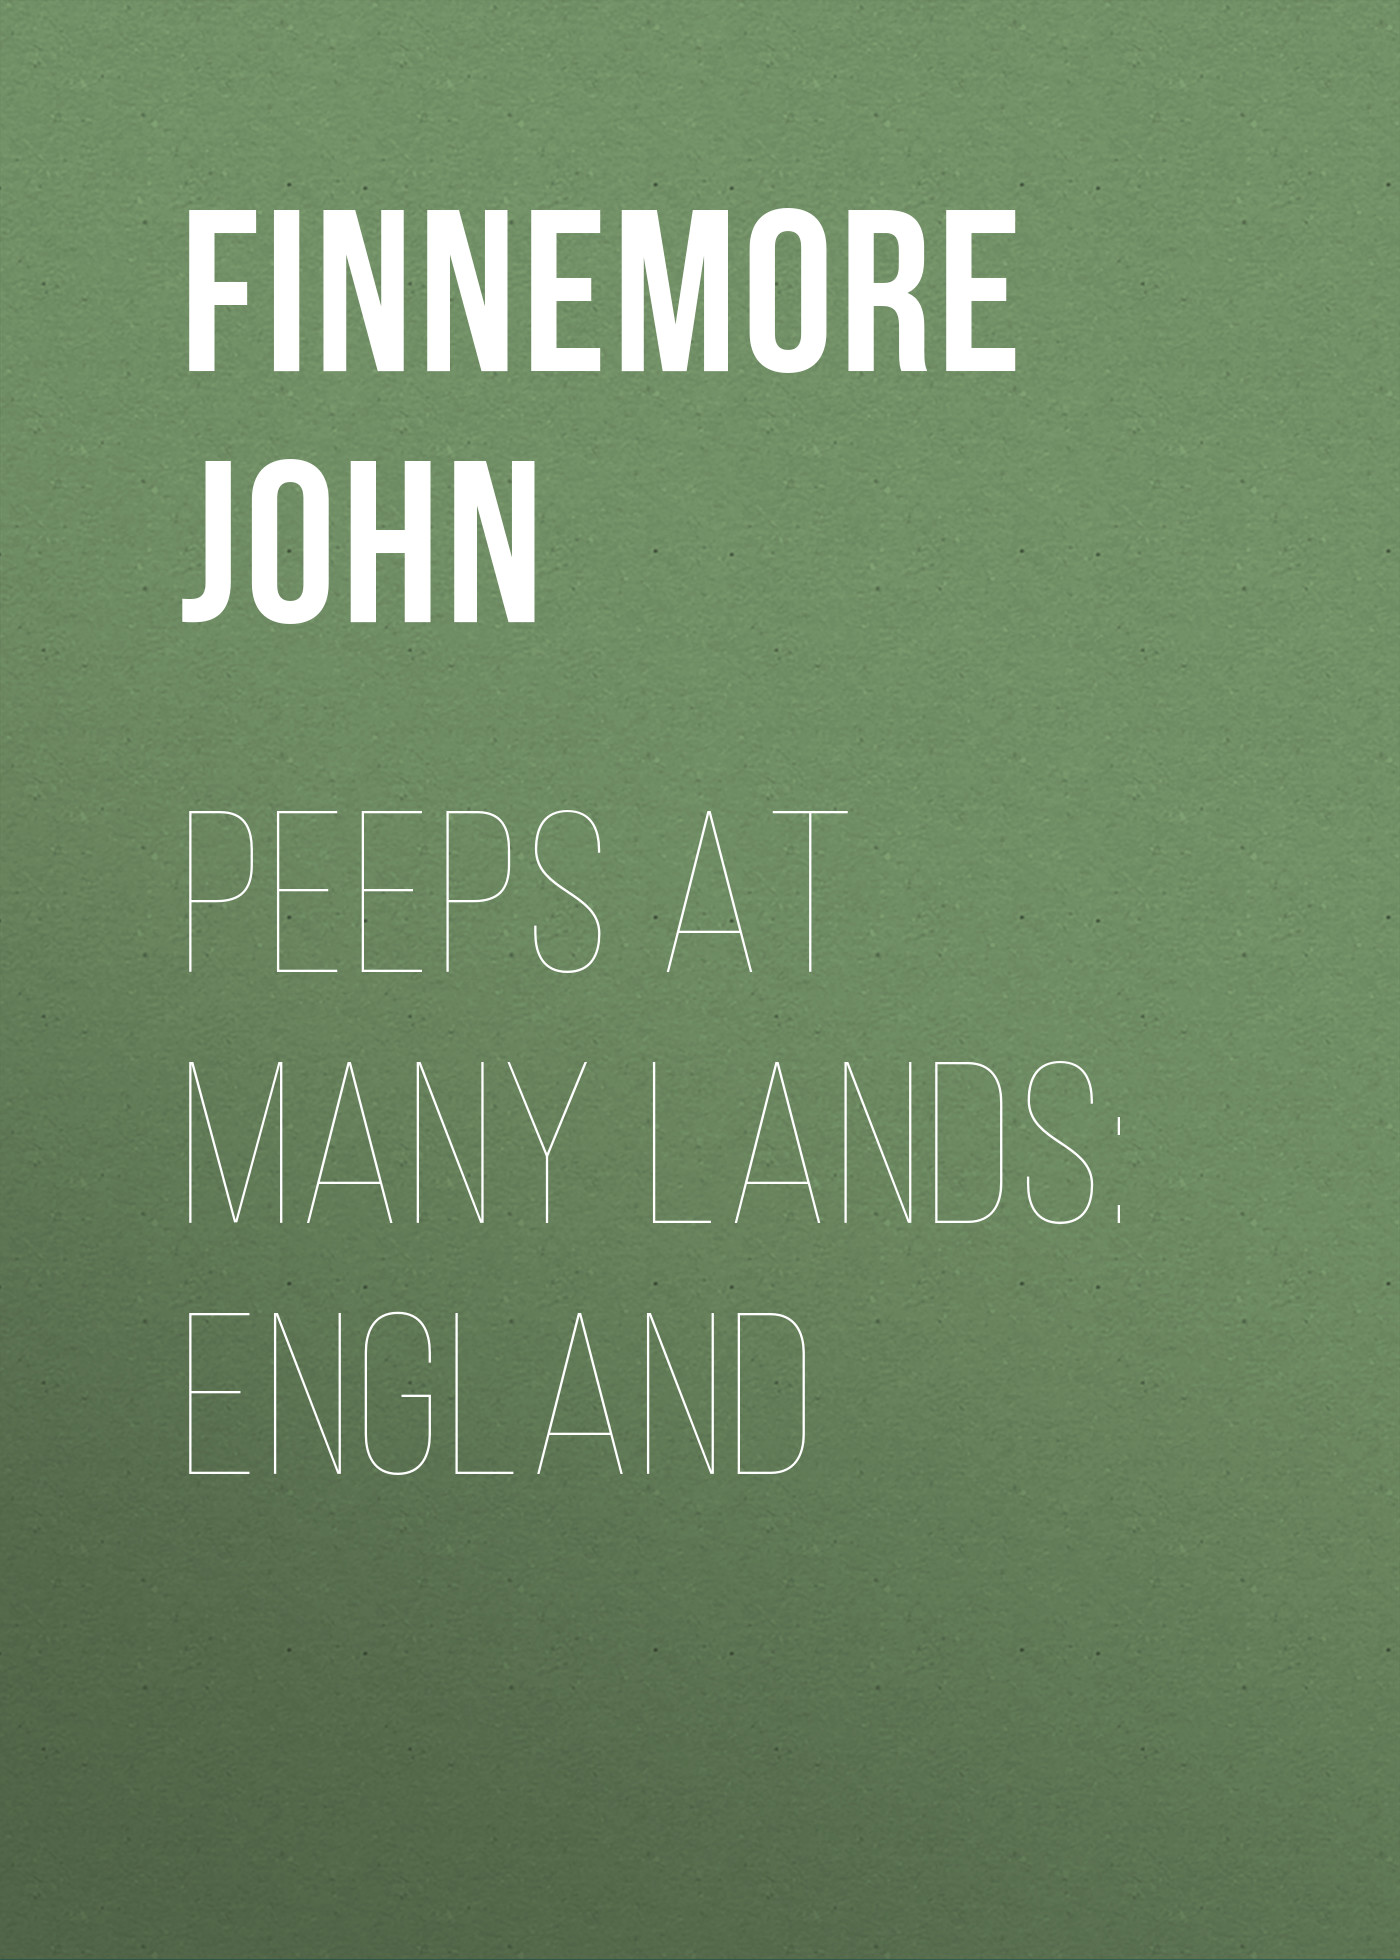 Finnemore John Peeps at Many Lands: England sterling outer lands cloth